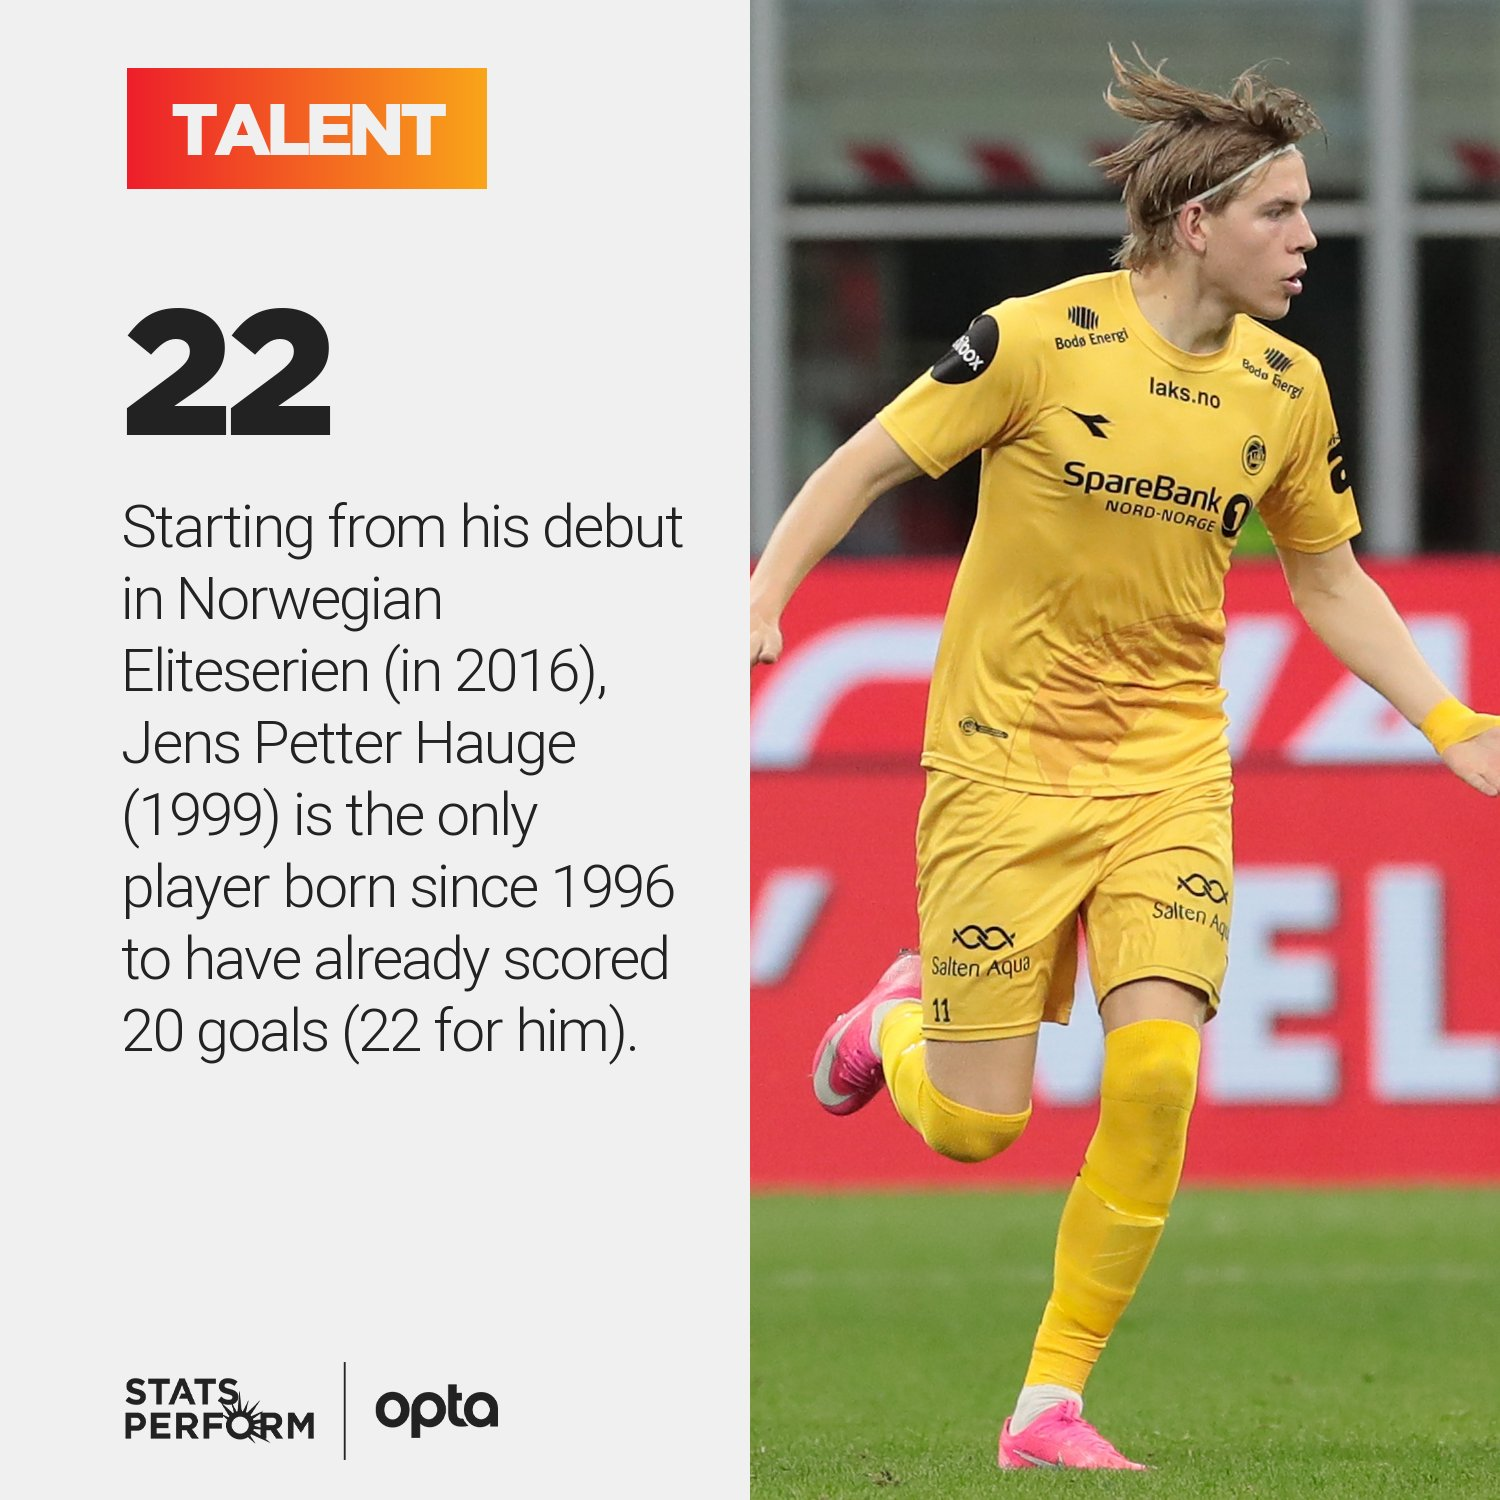 Optapaolo On Twitter 22 Starting From His Debut In Norwegian Eliteserien In 2016 Jens Petter Hauge 1999 Is The Only Player Born Since 1996 To Have Already Scored 20 Goals 22